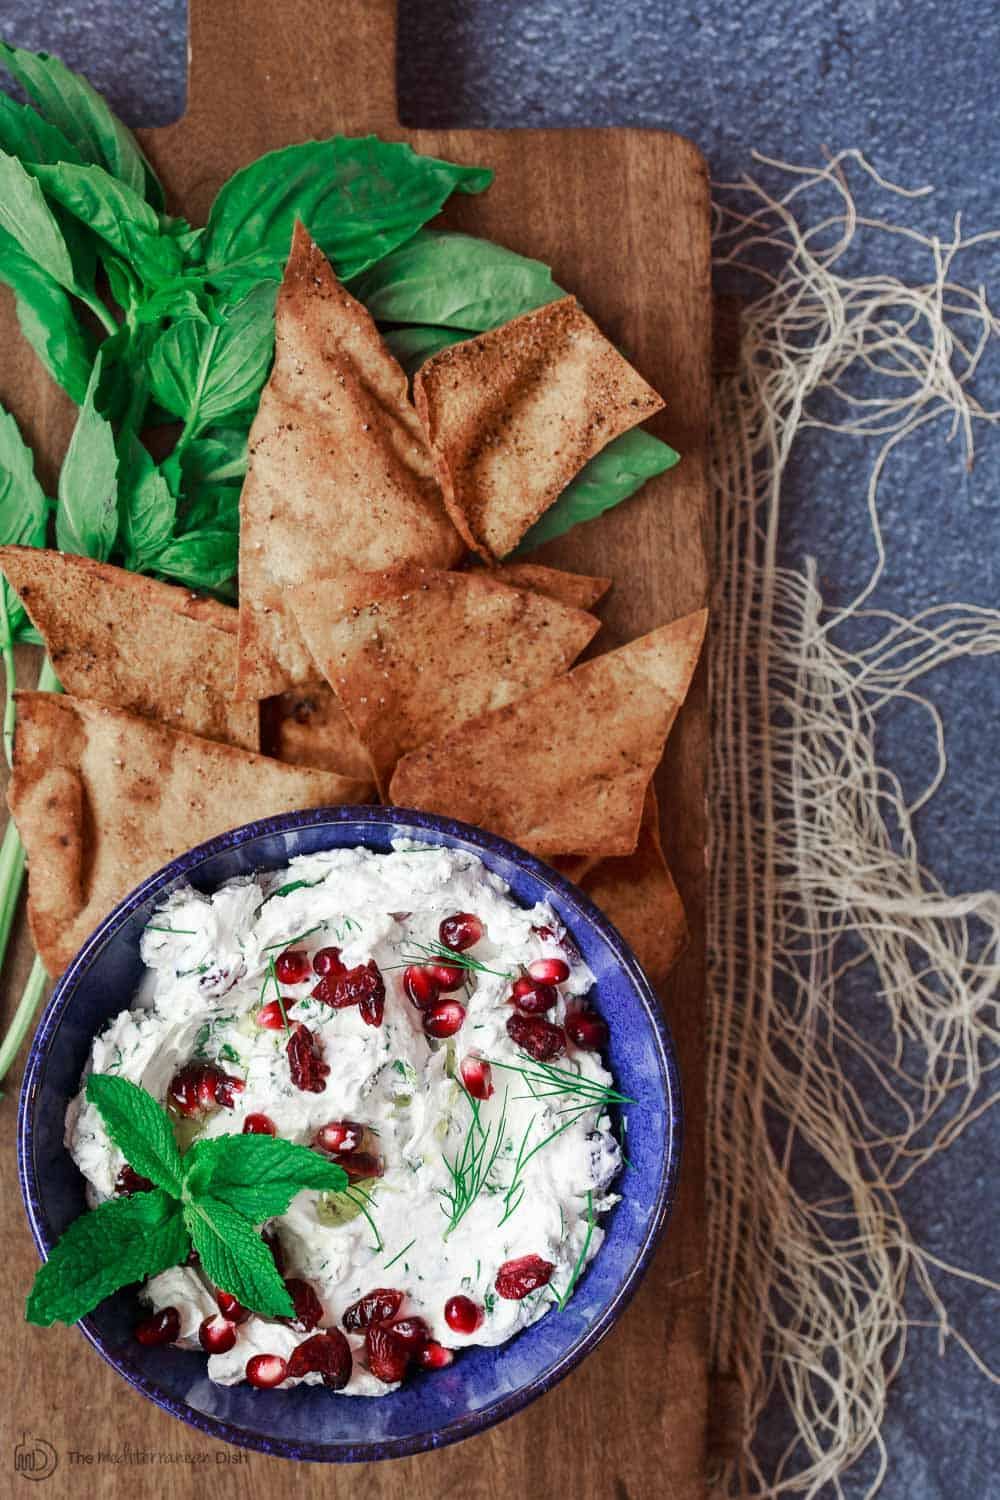 Cranberry and Herb Labneh Recipe | The Mediterranean Dish. Creamy labneh cheese makes the perfect Mediterranean party dip with loads of fresh herbs and dried cranberries. This labneh recipe comes with a homemade pita chips recipe as well! So easy. See it on TheMediterraneanDish.com